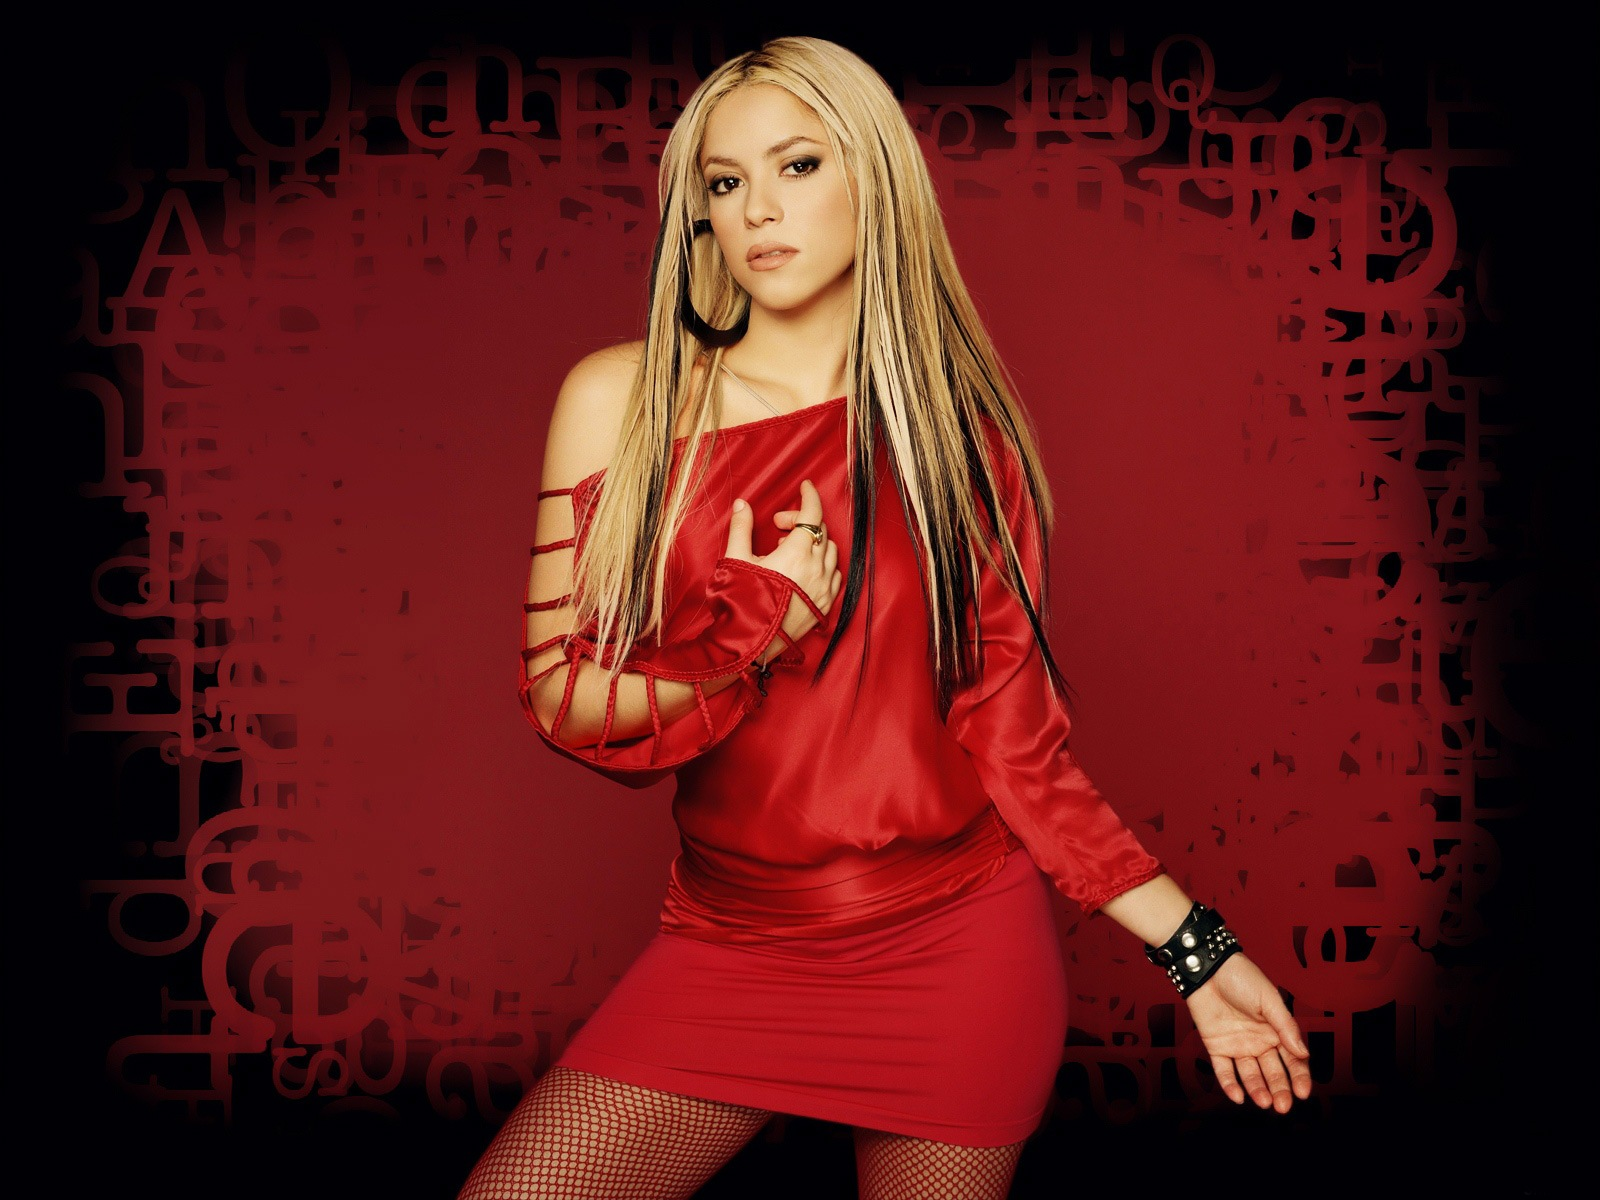 http://4.bp.blogspot.com/-xwwhcd-PYDw/Ta8lkIlytMI/AAAAAAAAAXE/Xf9PkPWi4u4/s1600/shakira-in-red-dress-in-photo-shots-shakira-in-red-dress-shakira-in-red-dress-shakira-in-red-dress-shakira-in-red-dress-shakira-in-red-dress-shakira-in-red-dress-shakira-in-red-dress-shakira-in-red-dress-shakira-in-red-dress-.jpg